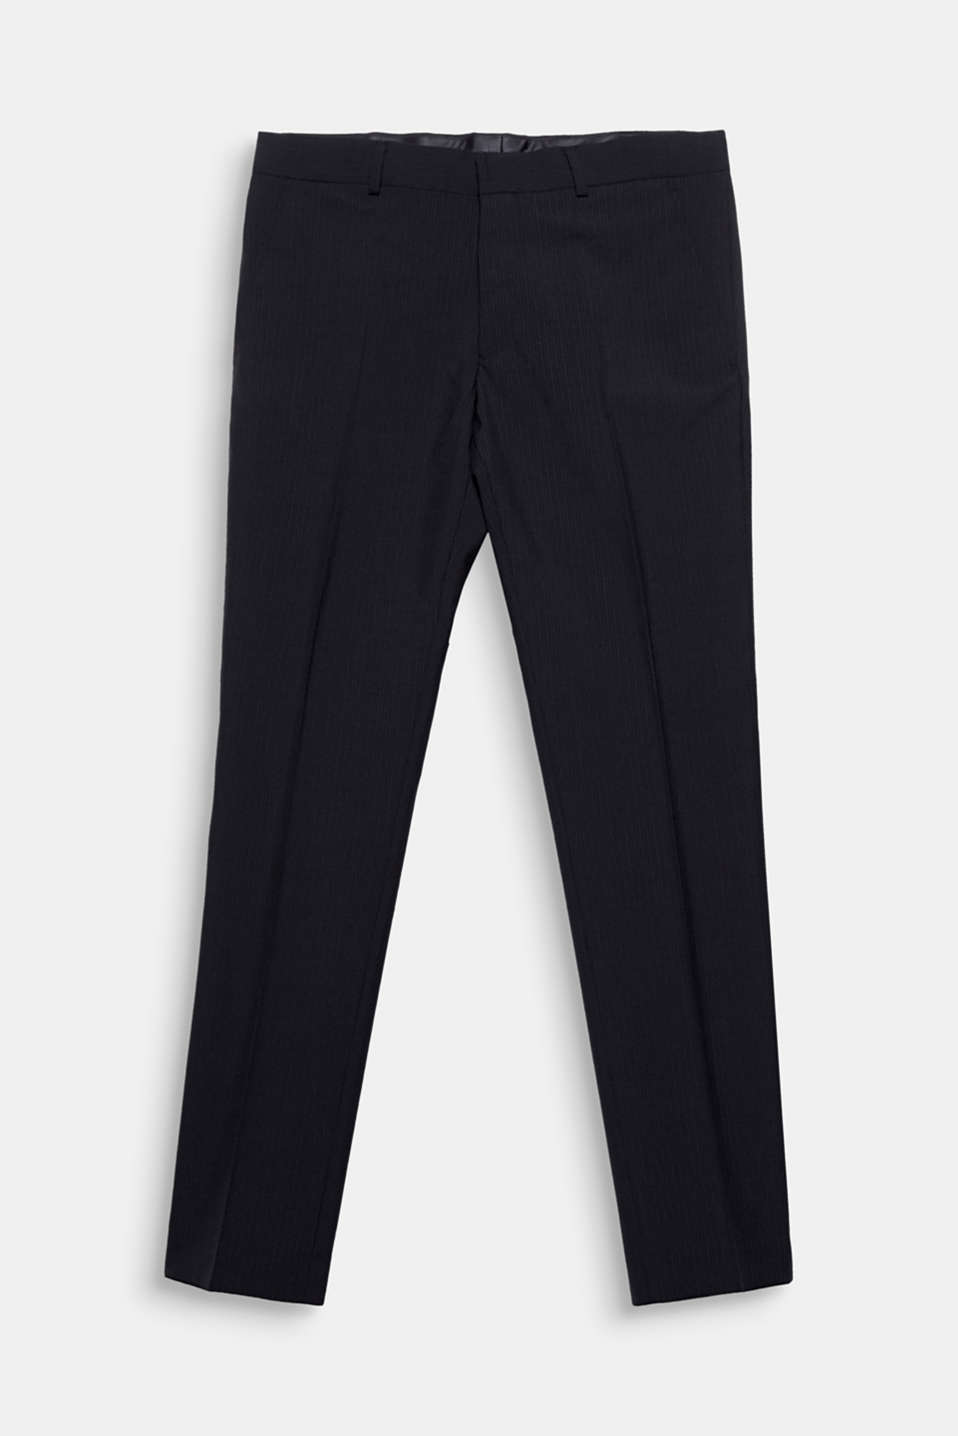 We love texture! Fine vertical stripes and high-quality new wool give these suit trousers an elegant look.